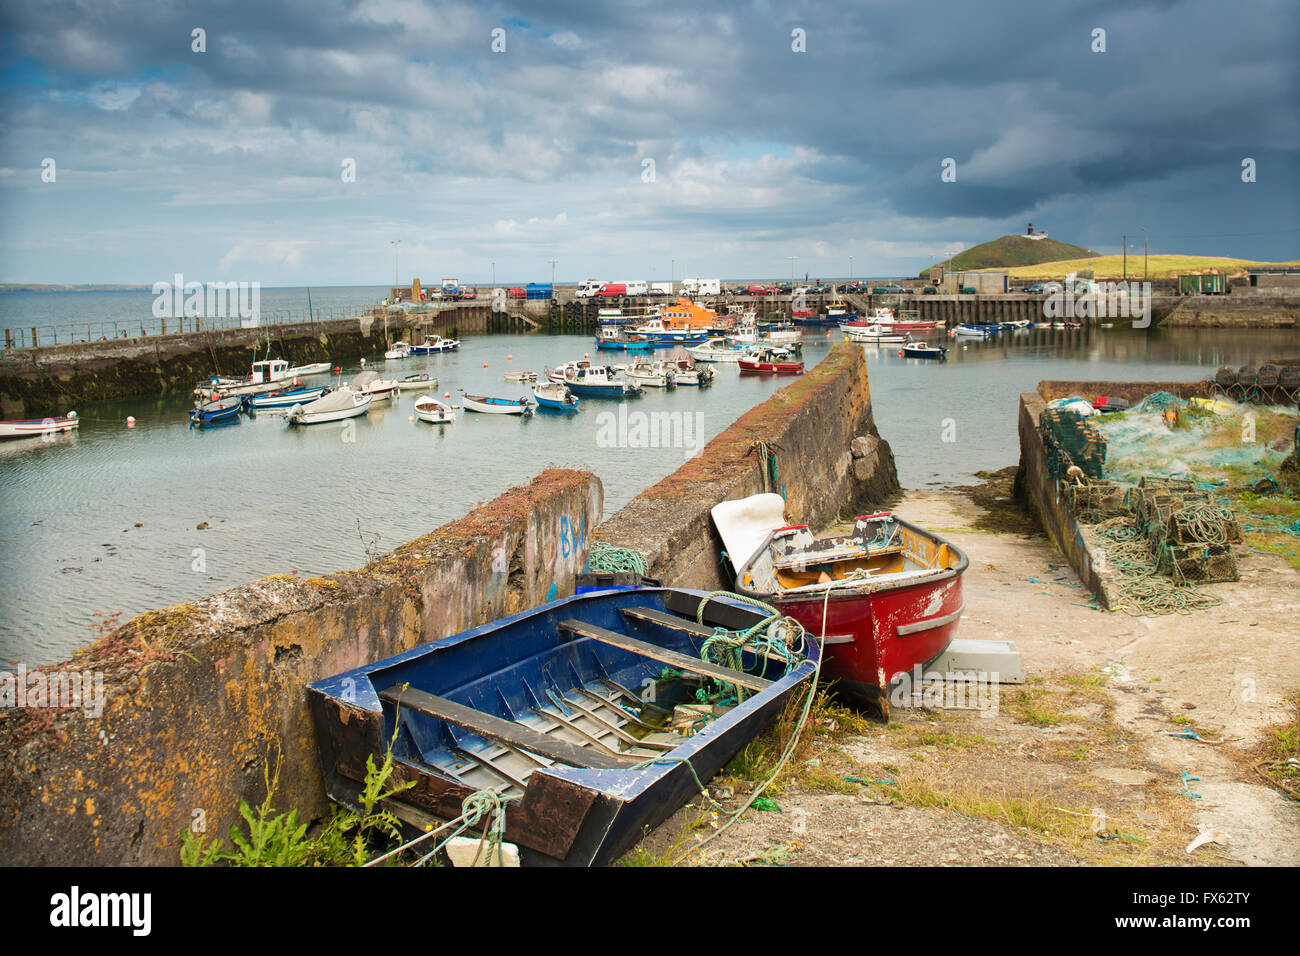 Old Colorful boats in the foreground with the boats in Ballycotton Harbour, Ballycotton Marina,County Cork, Ireland - Stock Image